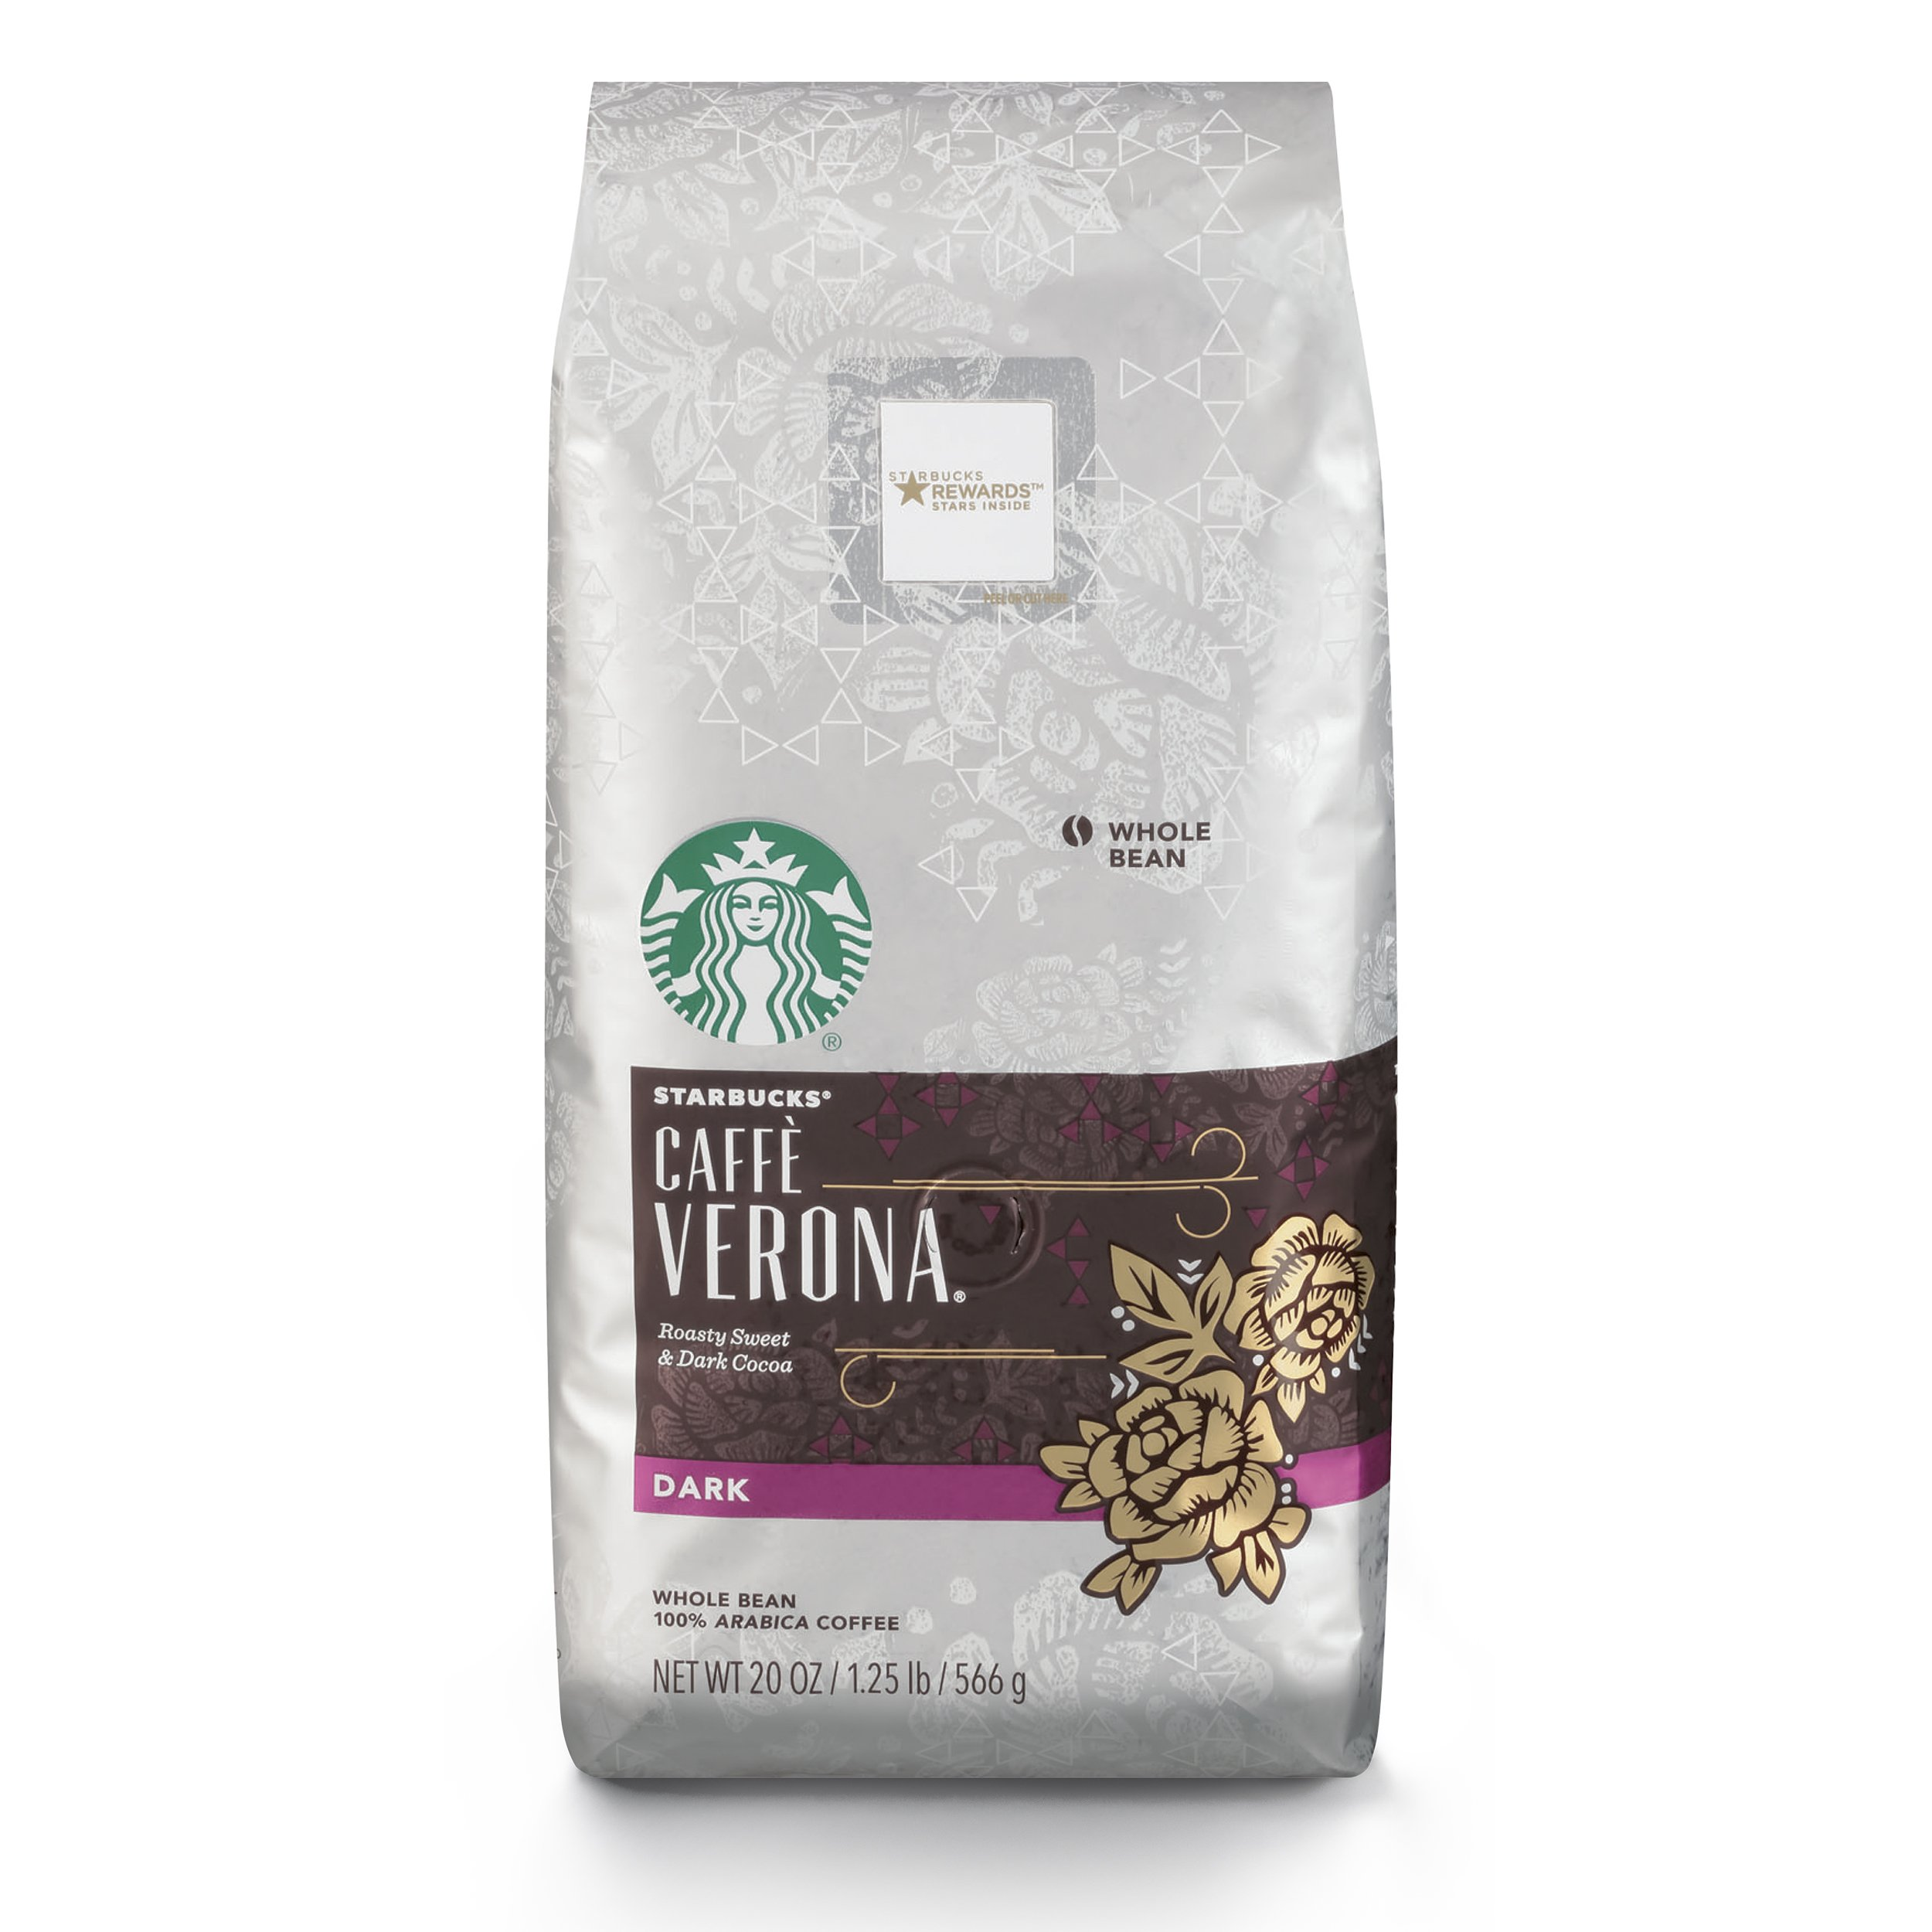 Starbucks Caffe Verona Dark Roast Whole Bean Coffee, 20-Ounce Bag